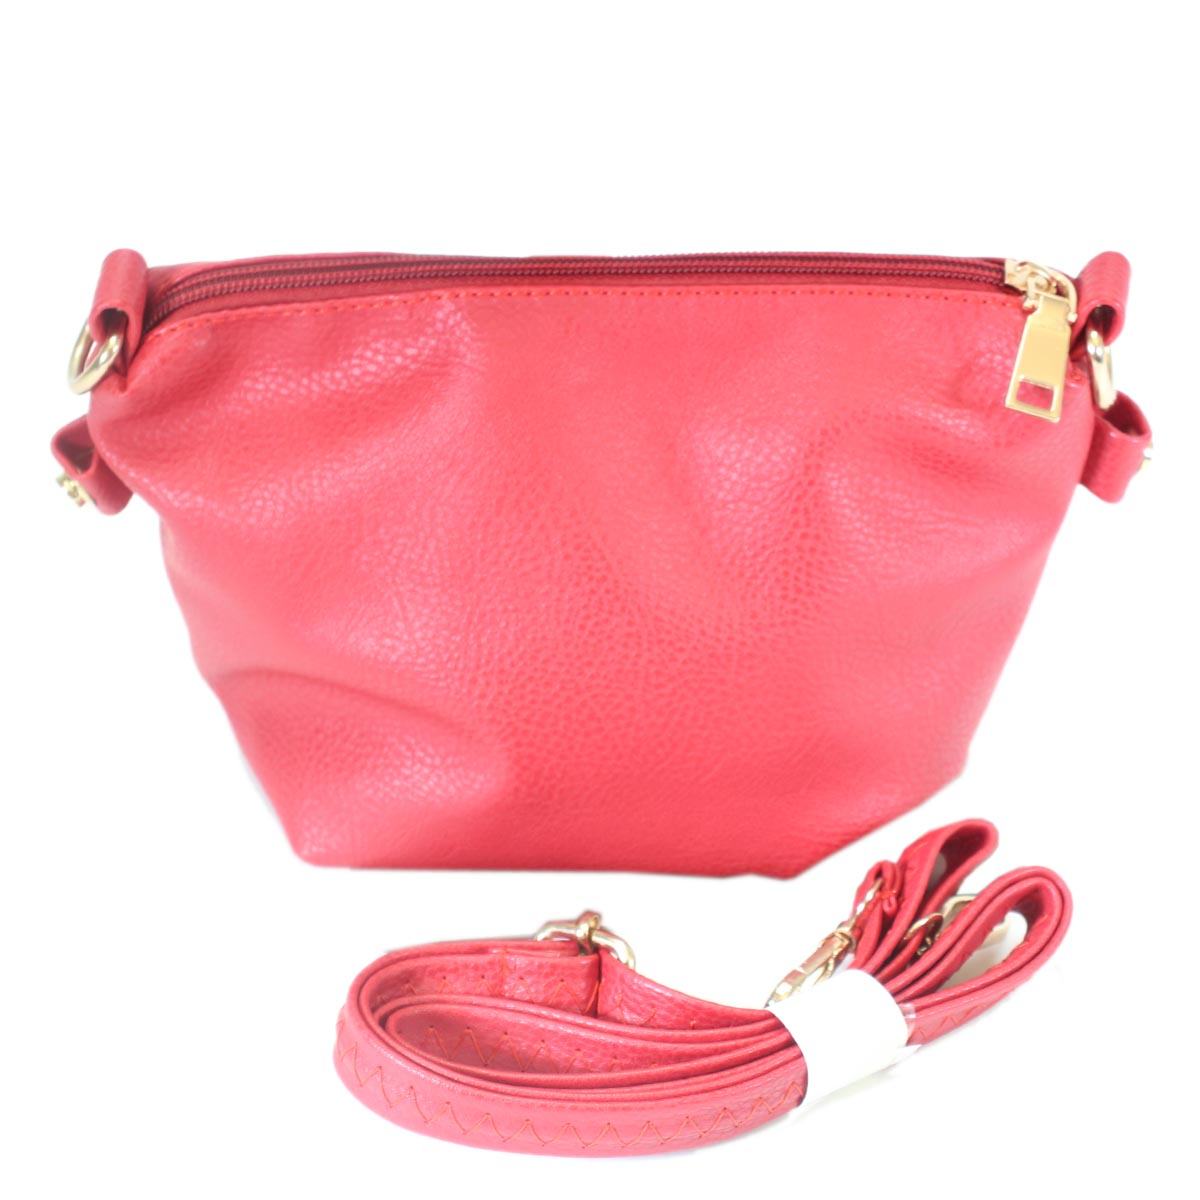 Mini faux leather bag 2 in 1